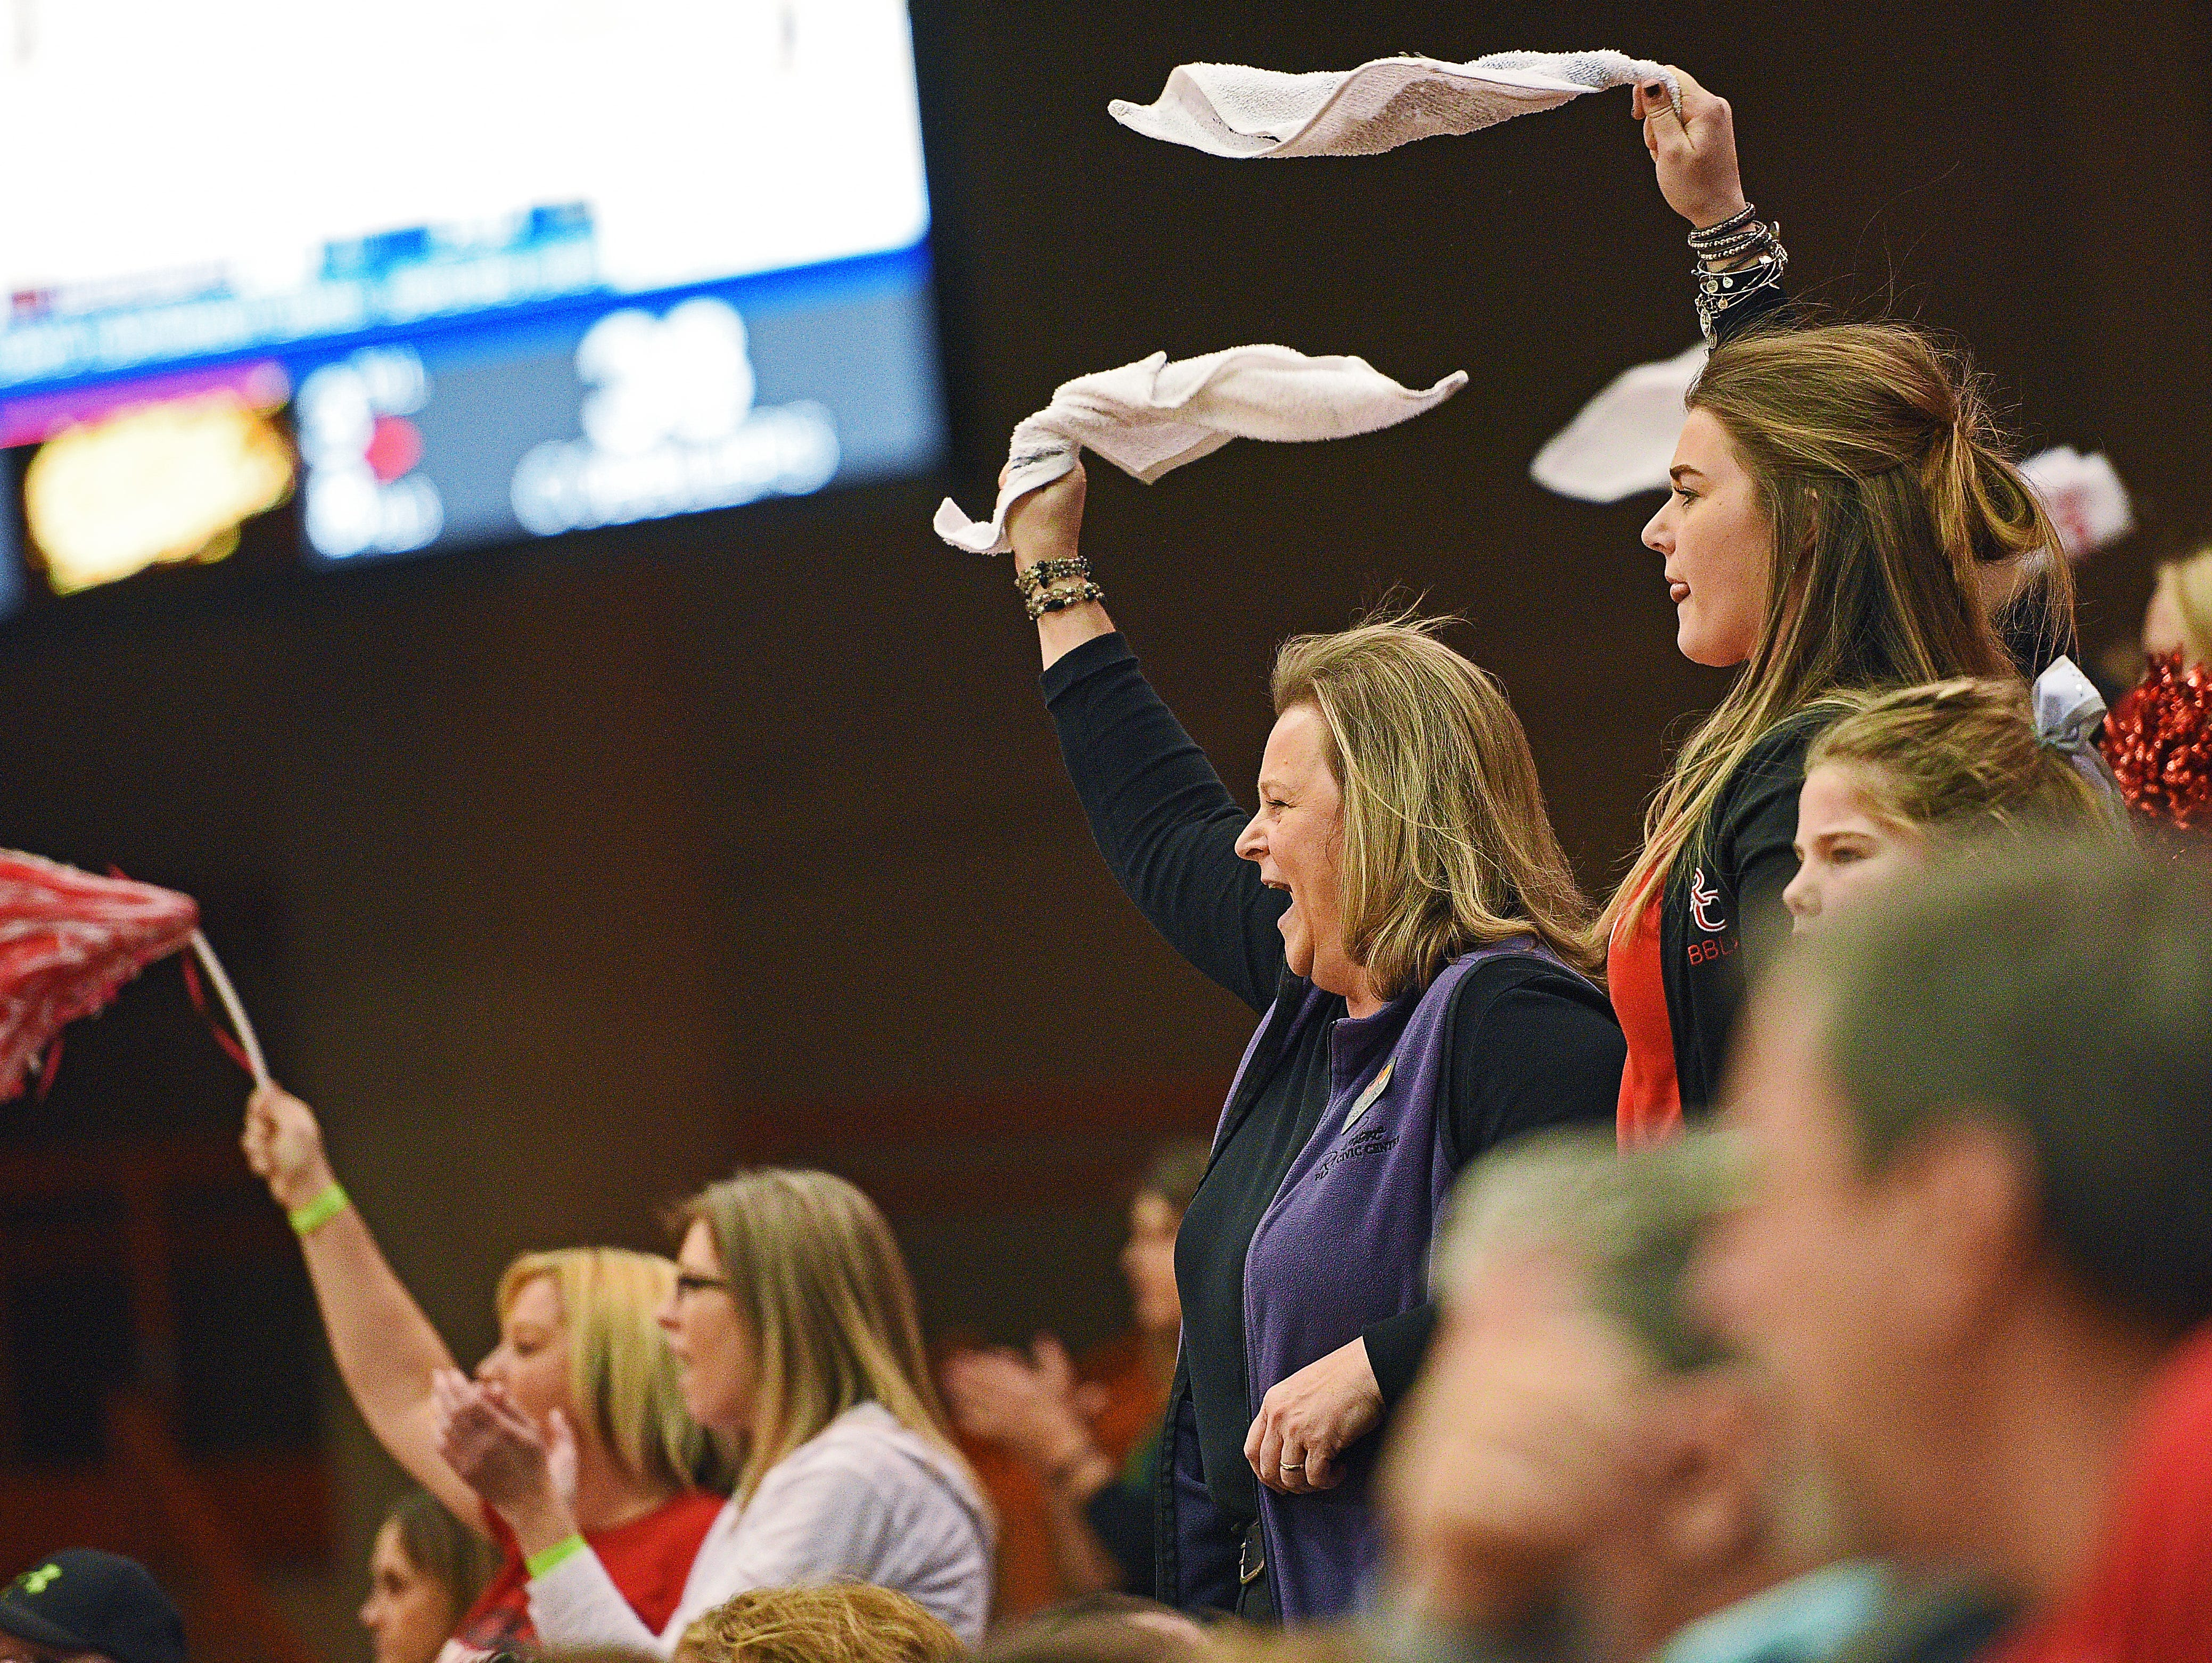 Rapid City Central fans cheer on their team during a 2017 SDHSAA Class AA State Girls Basketball semifinal game against Harrisburg Friday, March 17, 2017, at Rushmore Plaza Civic Center in Rapid City. Harrisburg beat Rapid City Central 49-44, and will play in Saturday's final.